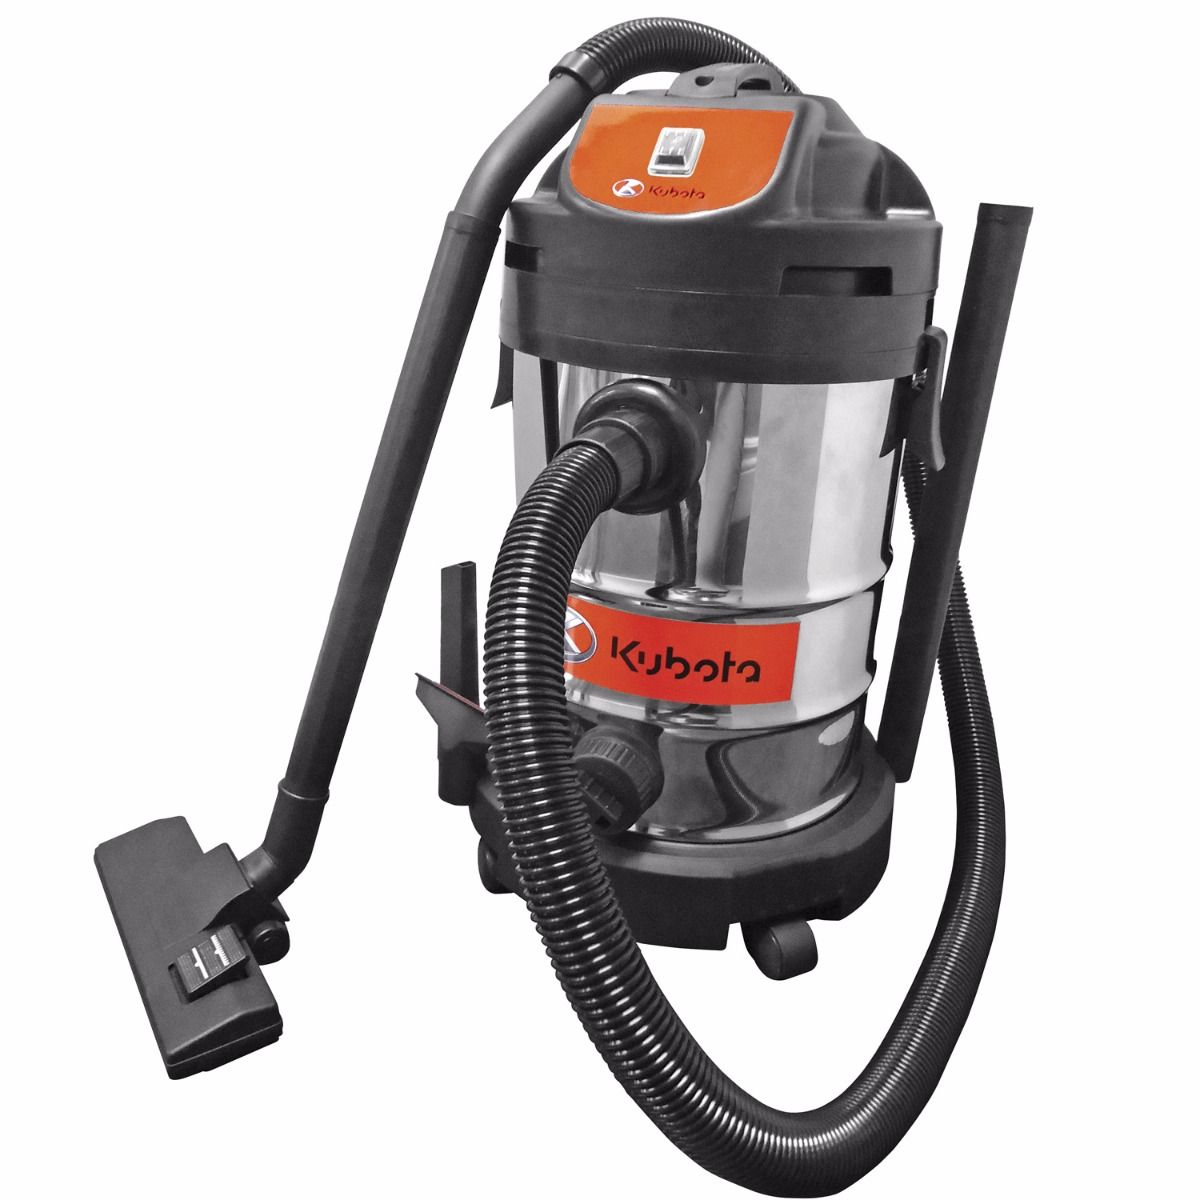 Kubota 8 Gallon Stainless Steel Vacuum